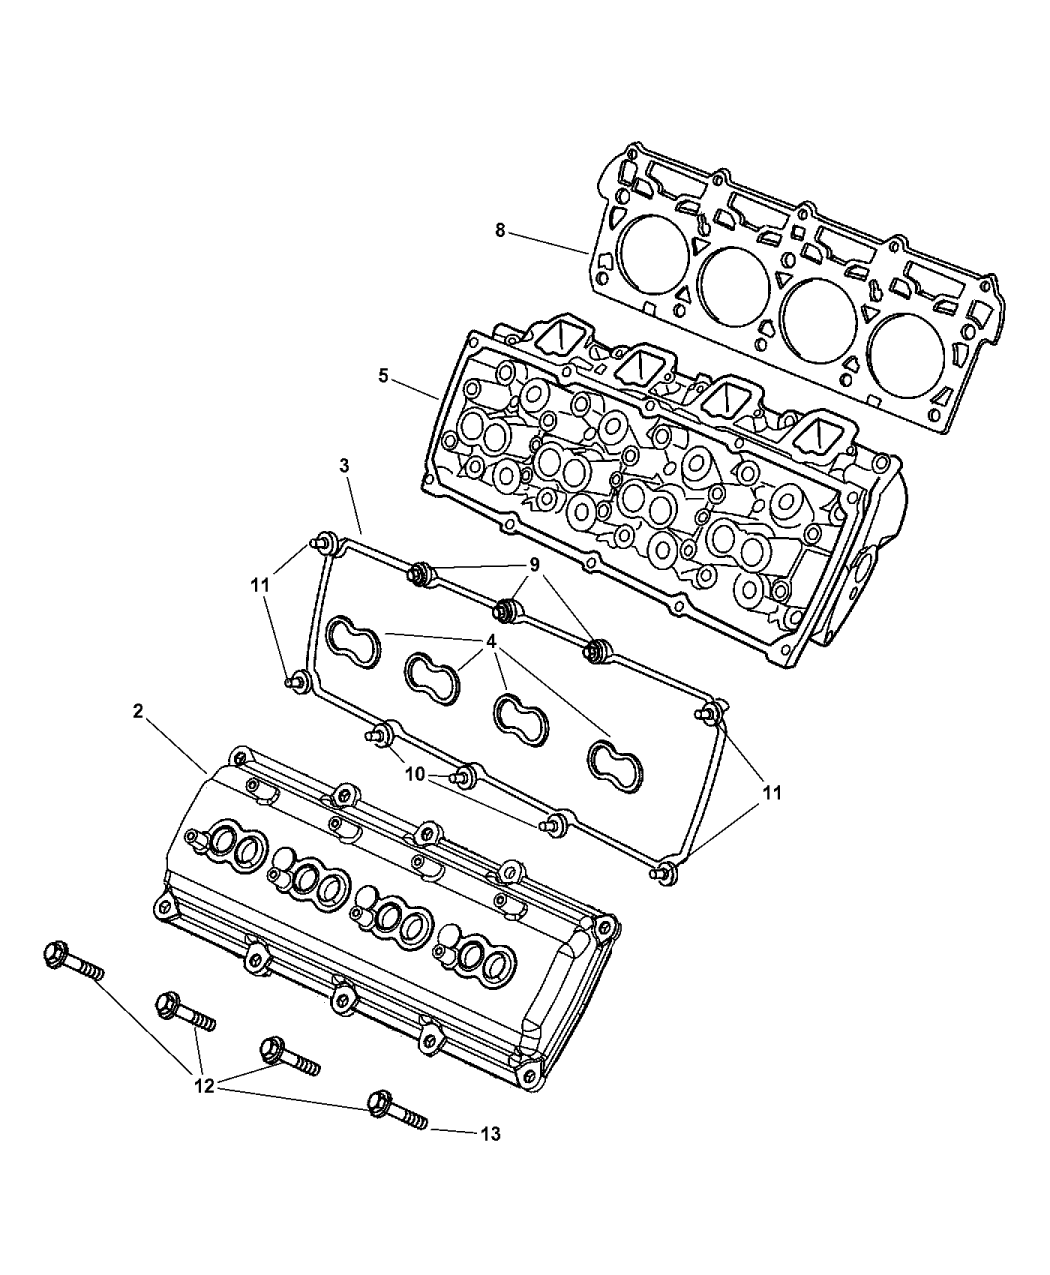 2003 dodge ram 2500 cylinder head